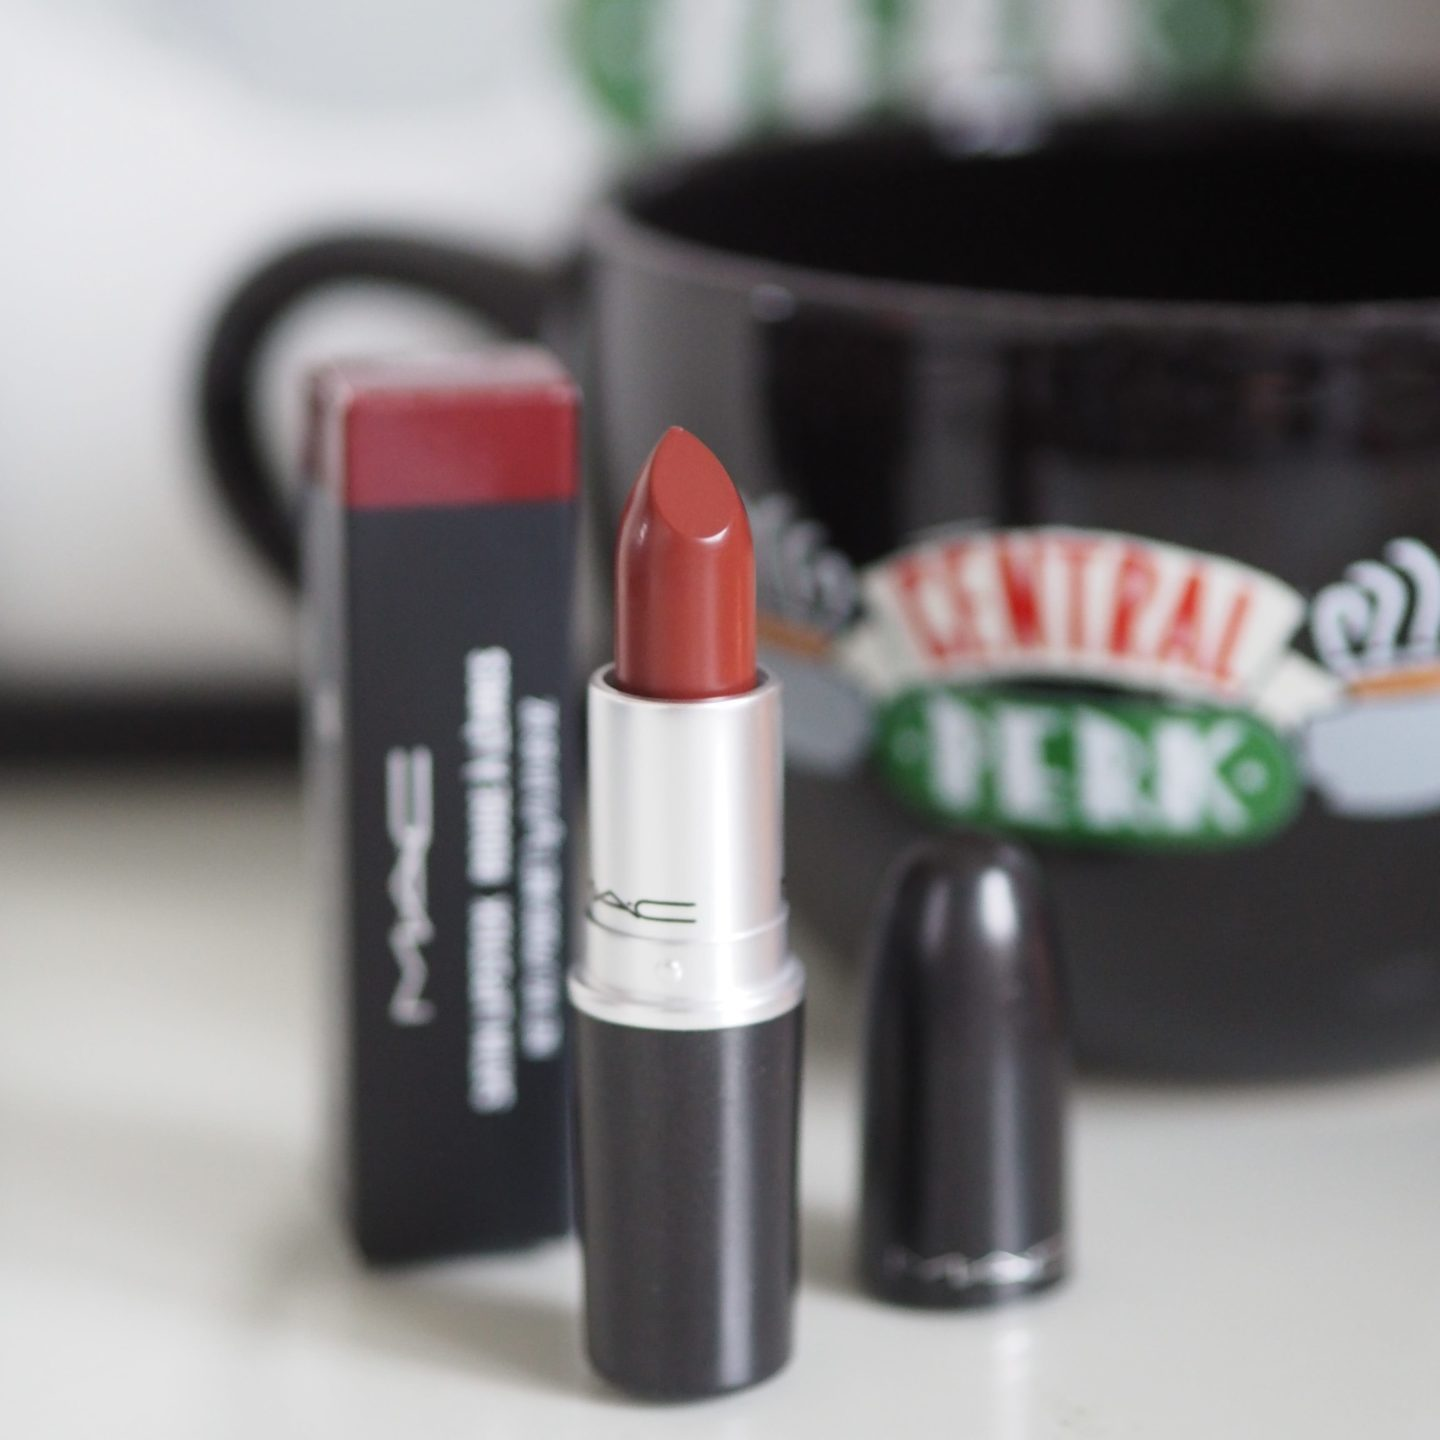 Lipstick Rachel Green wore in Friends MAC Paramount